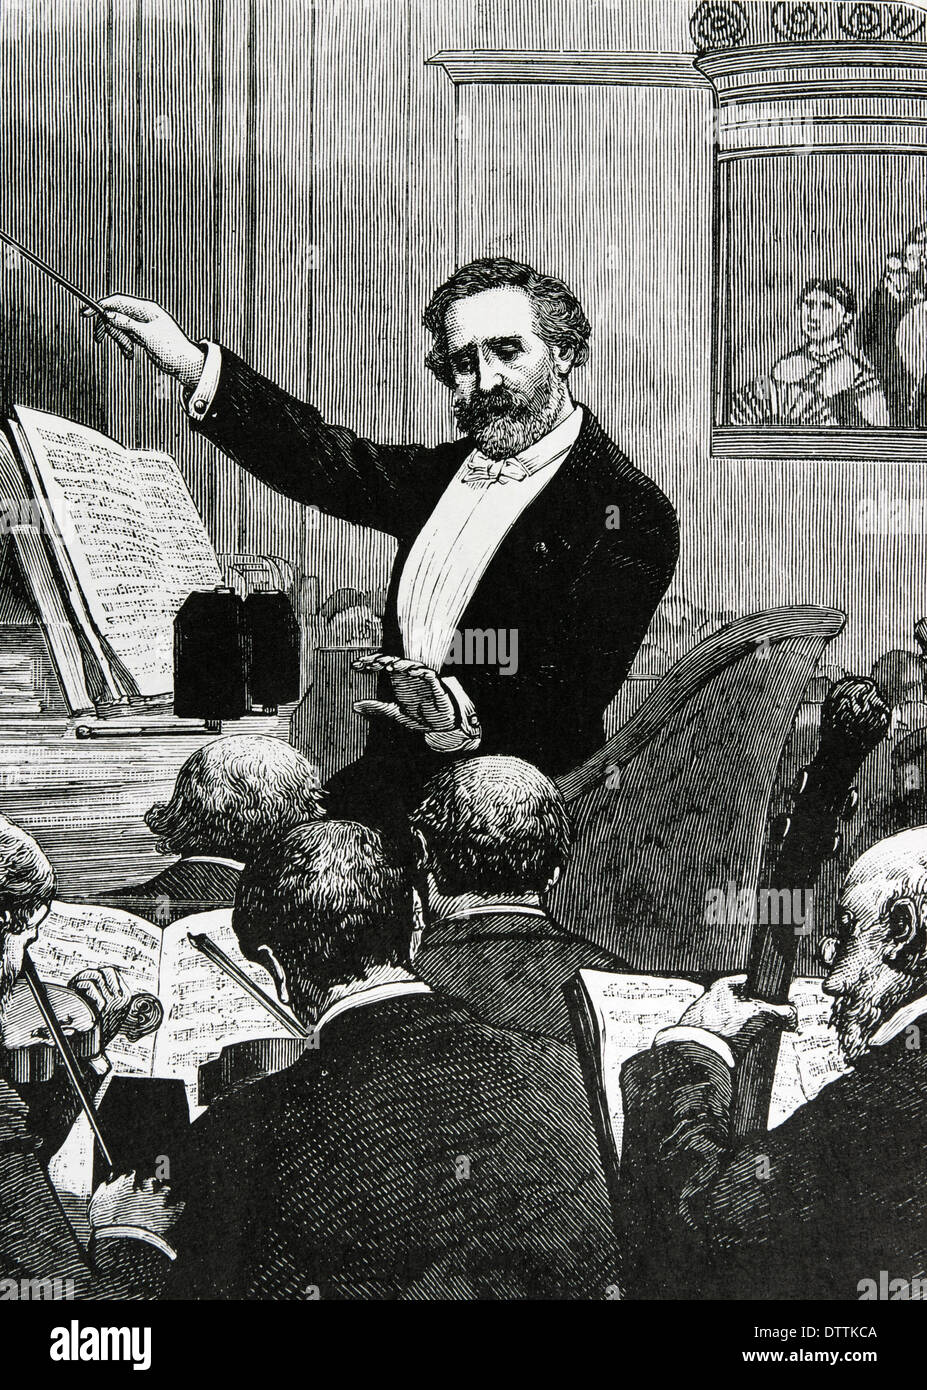 Giuseppe Verdi (1813-1901). Italian romantic composer. 'France, Paris. Verdi conducting one of his own operas'. Engraving - Stock Image